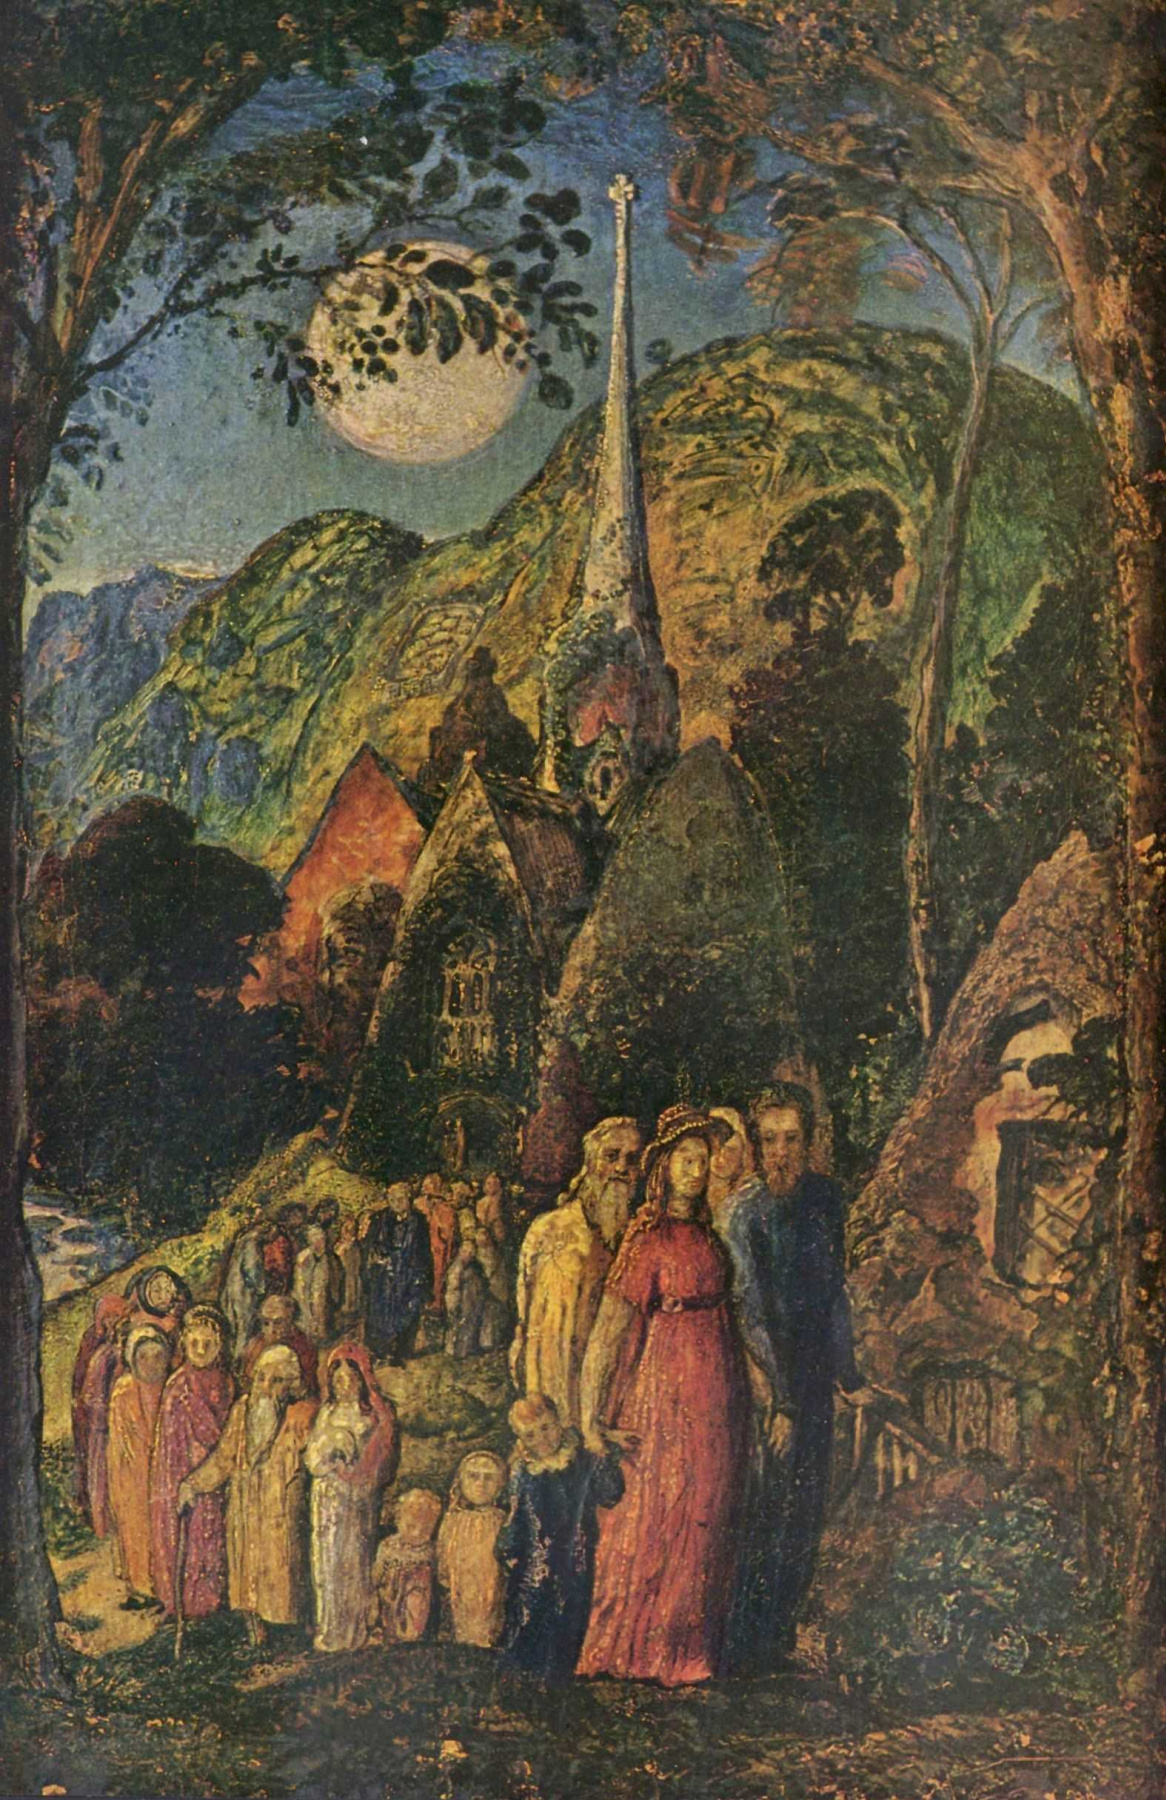 Samuel Palmer. From the supper